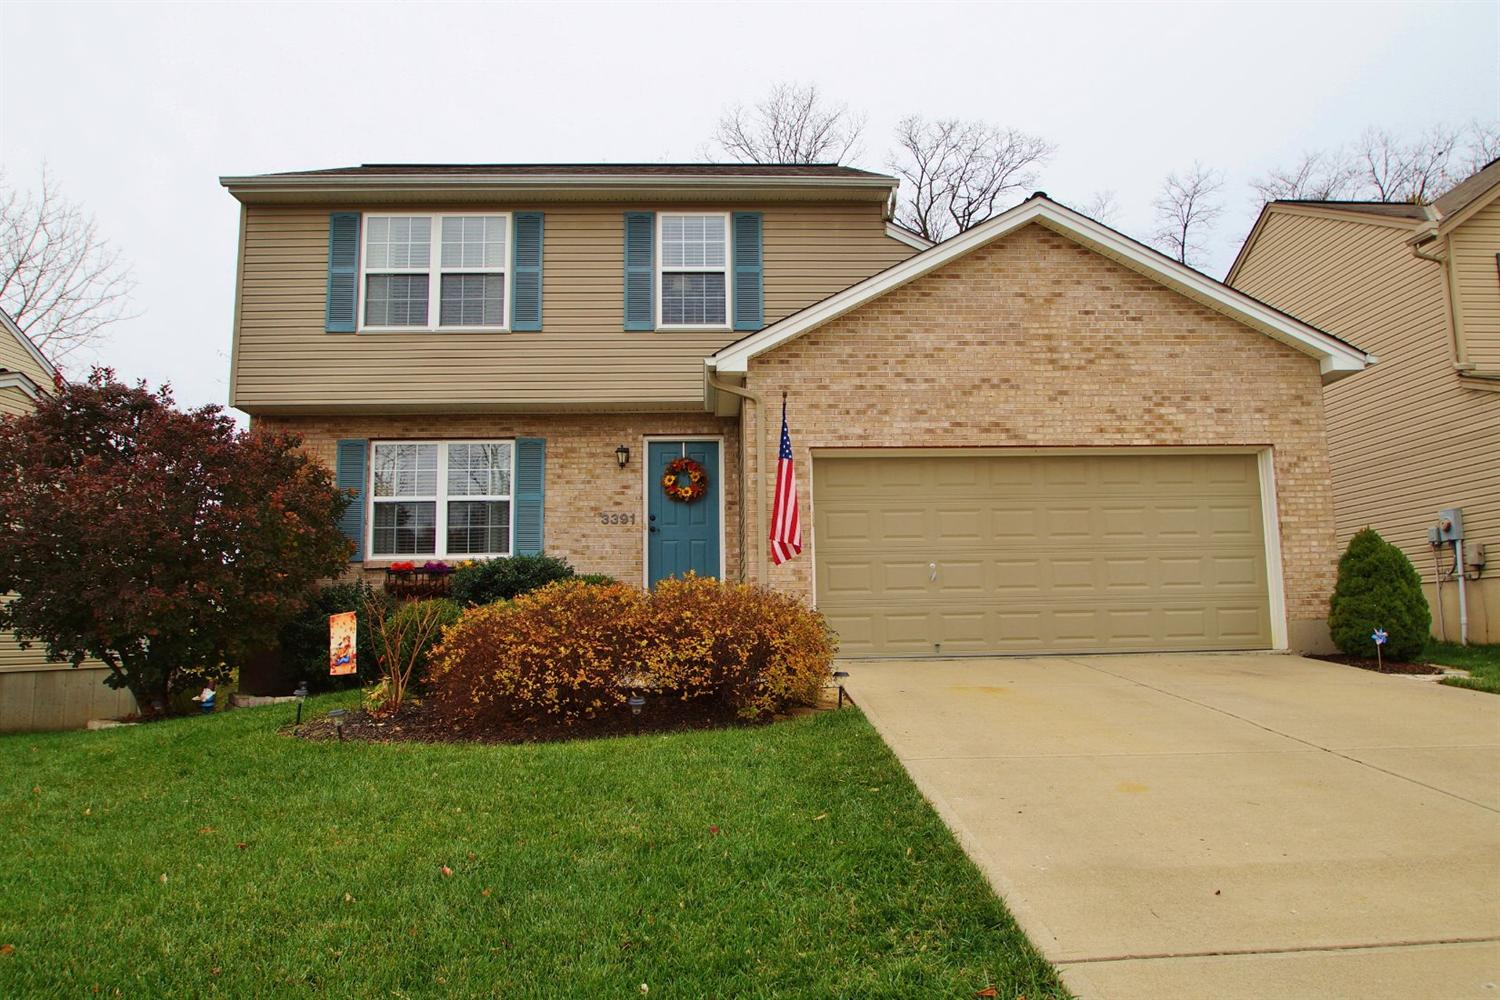 Photo 1 for 3391 Spruce Tree Ln Erlanger, KY 41018